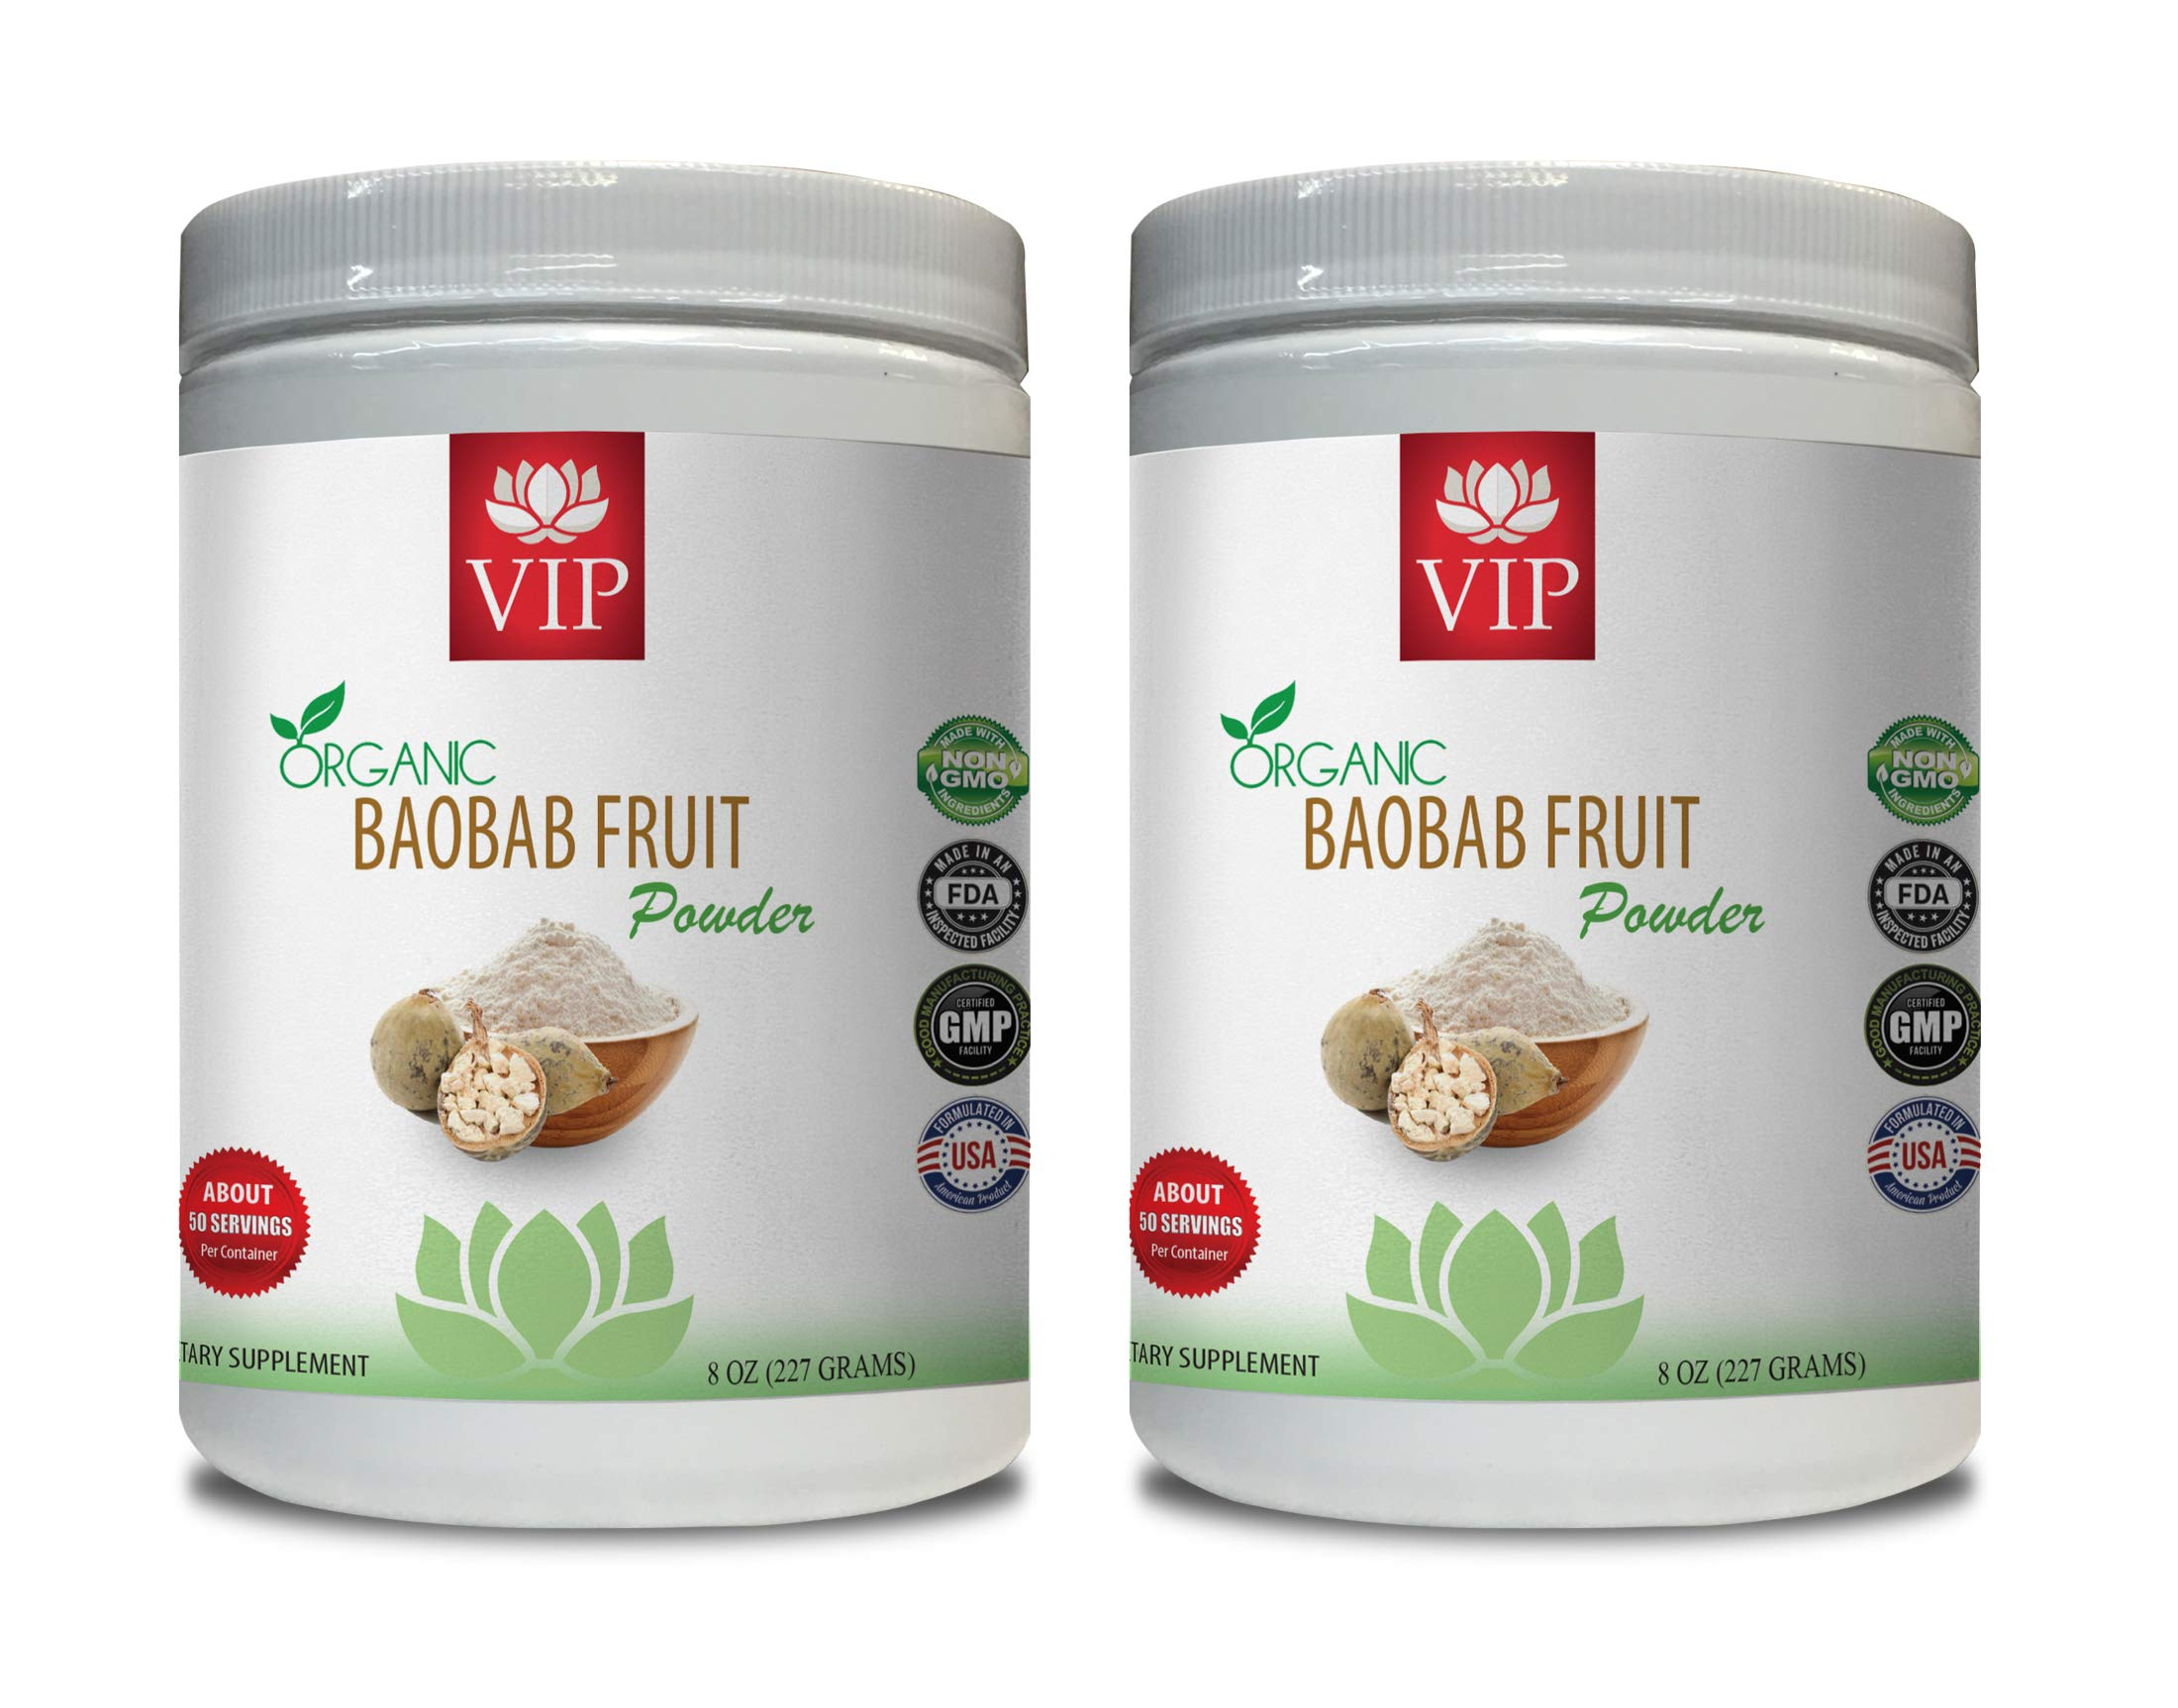 antioxidant Organic - Baobab Fruit Organic Powder - Digestive aid Powder - 2 Cans 16 OZ (100 Servings)